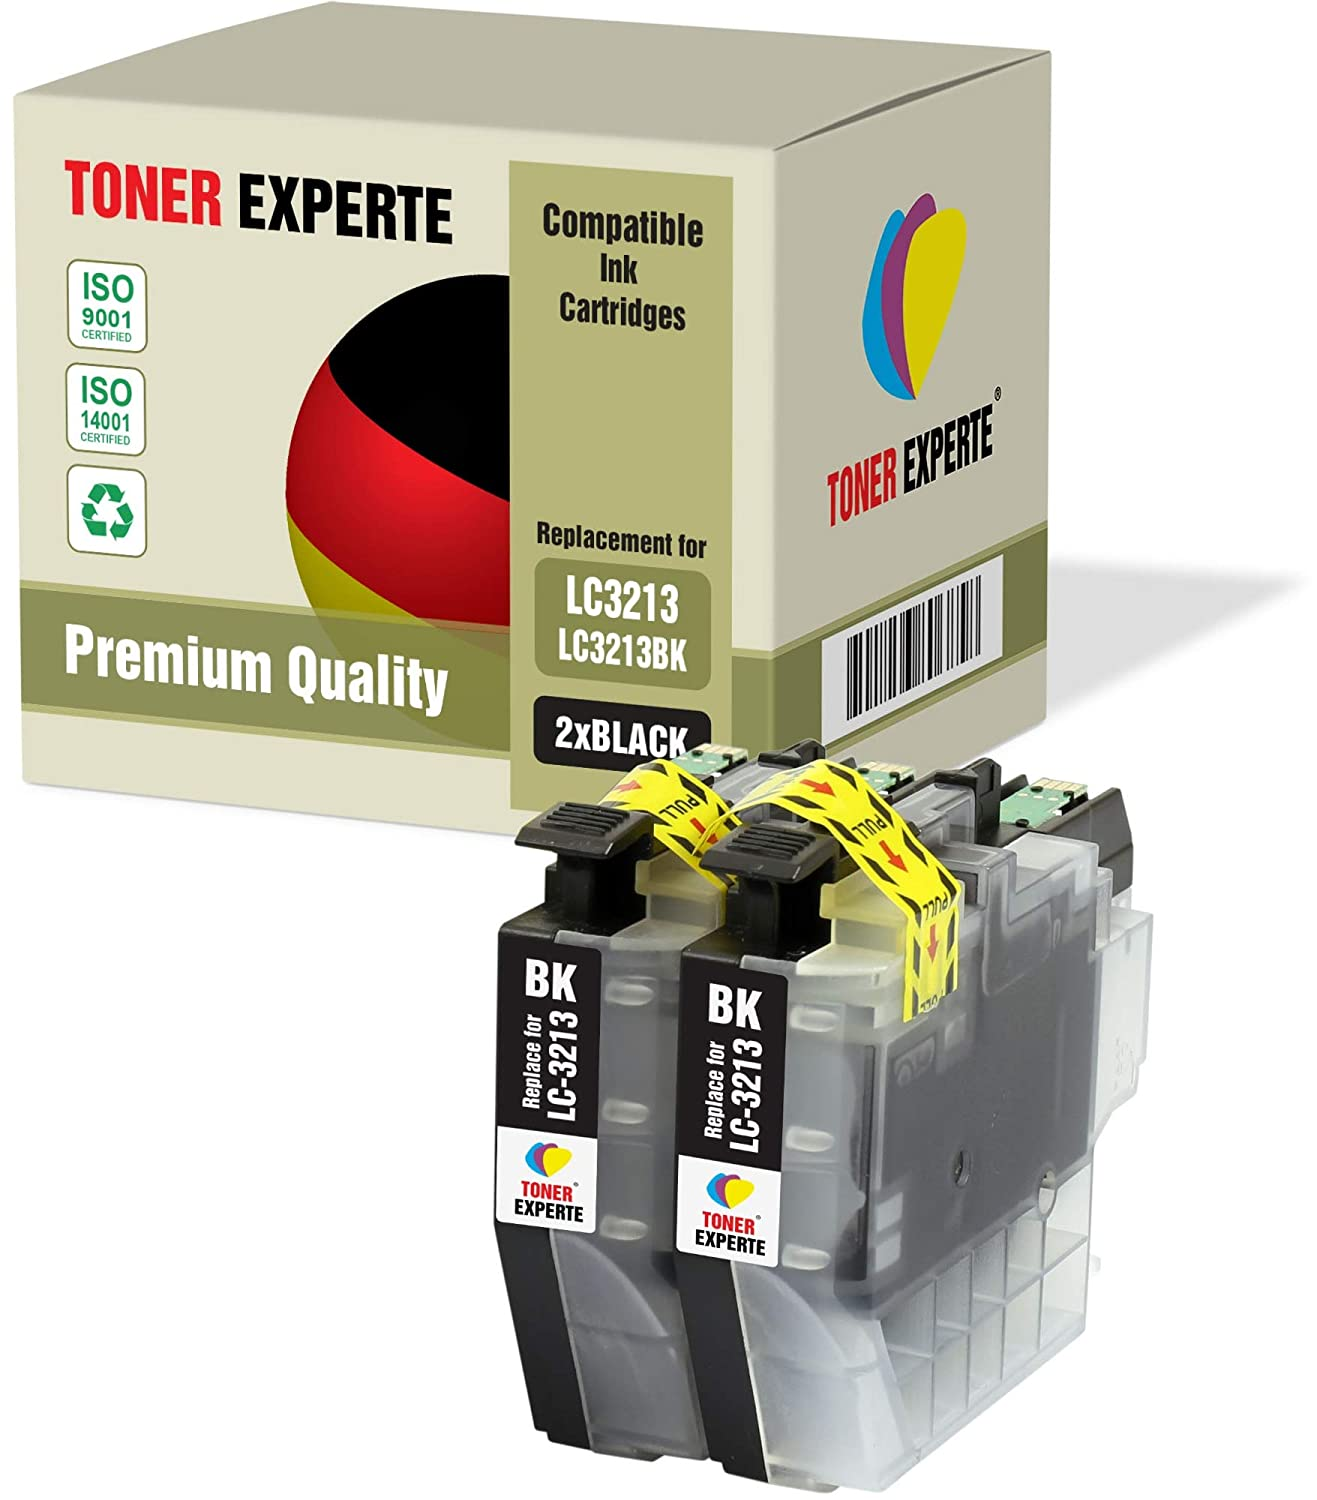 Amazon.com: TONER EXPERTE Lc3213 Lc3213Bk 2 Compatible Ink ...